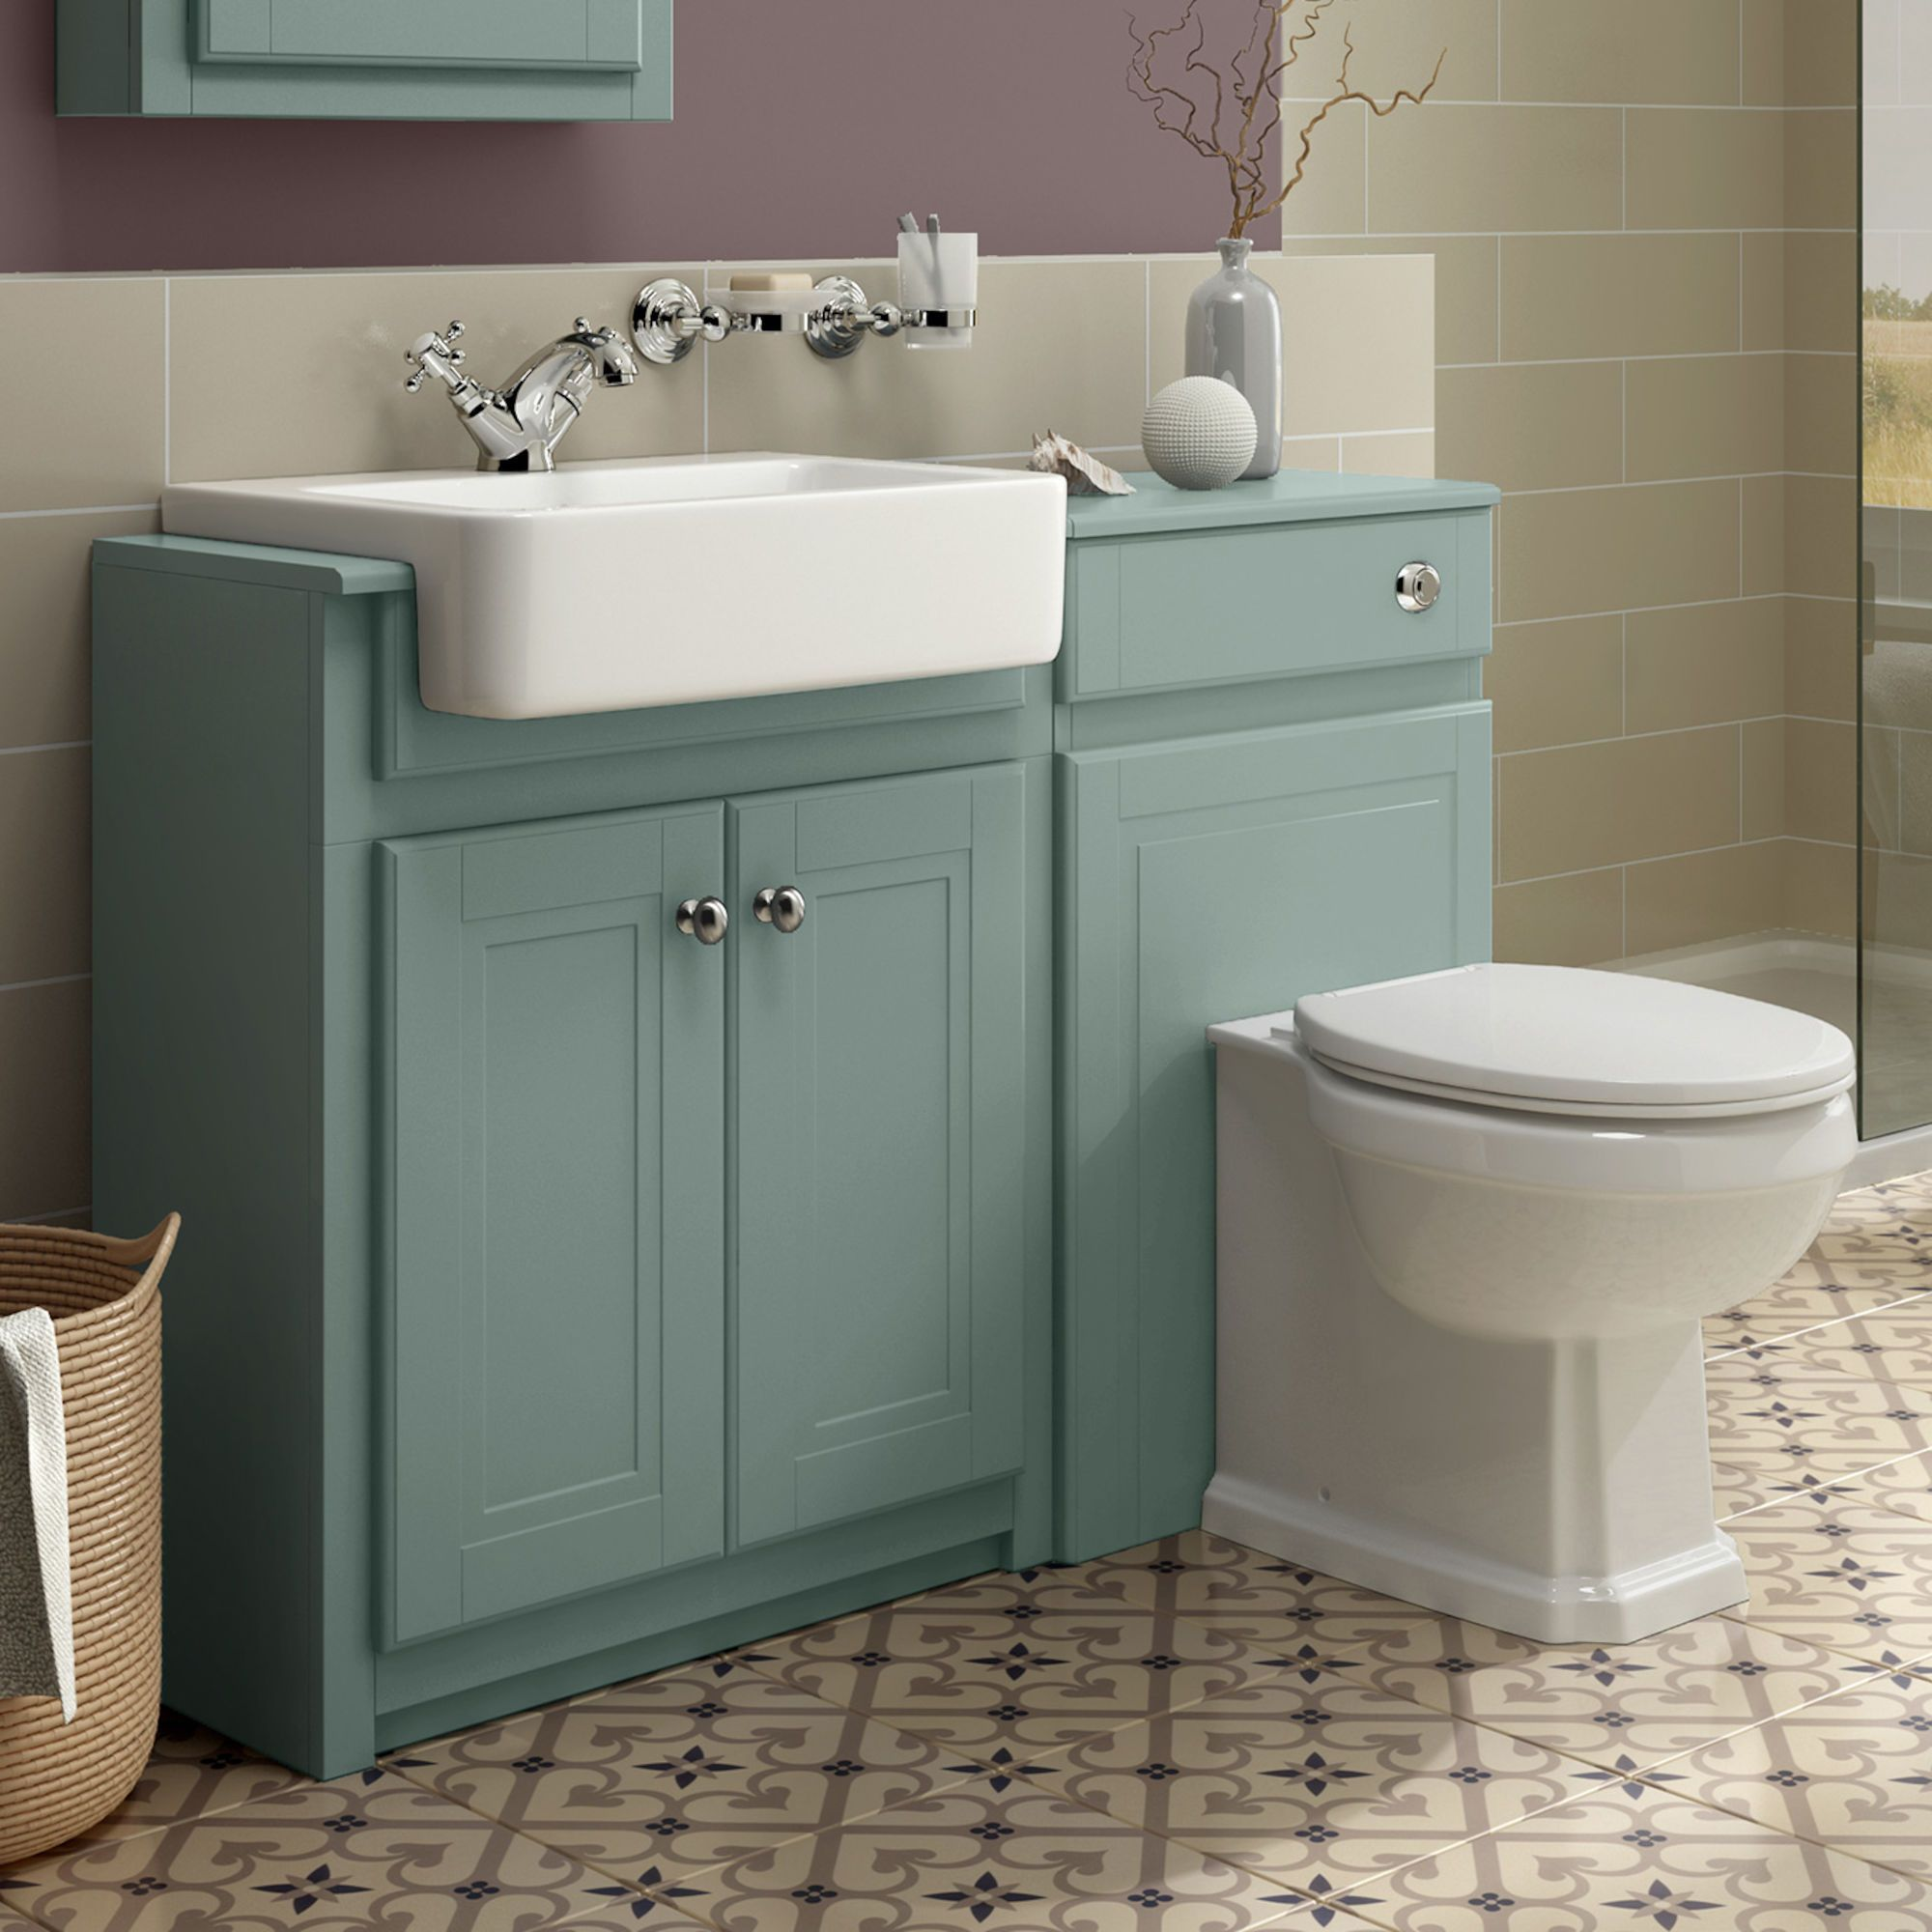 Toilet Sink Combo Ideas For Best Bathroom Design Bathroom